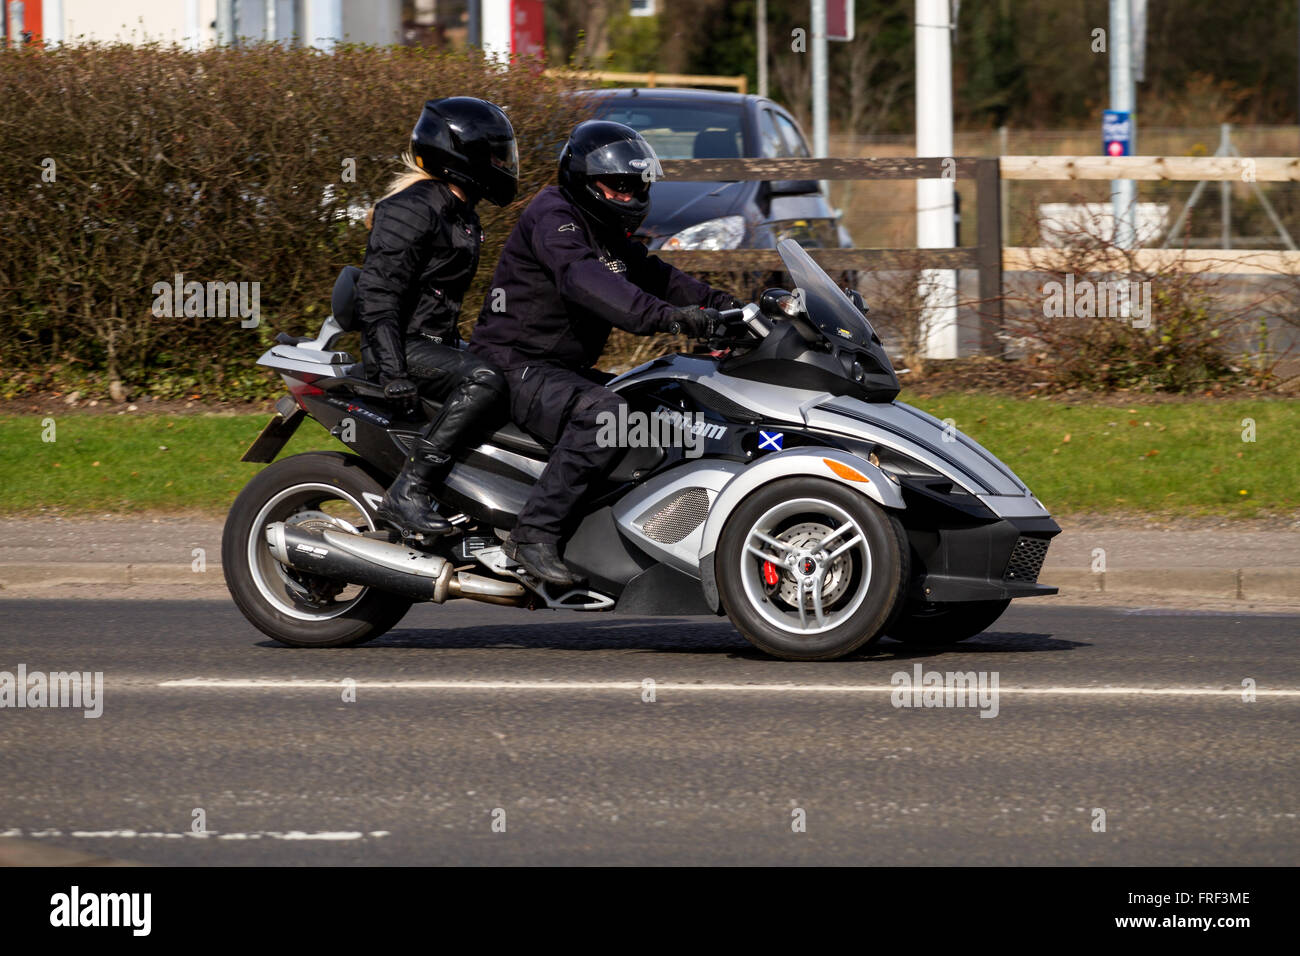 3 wheel motorcycle stock photos 3 wheel motorcycle stock images alamy. Black Bedroom Furniture Sets. Home Design Ideas